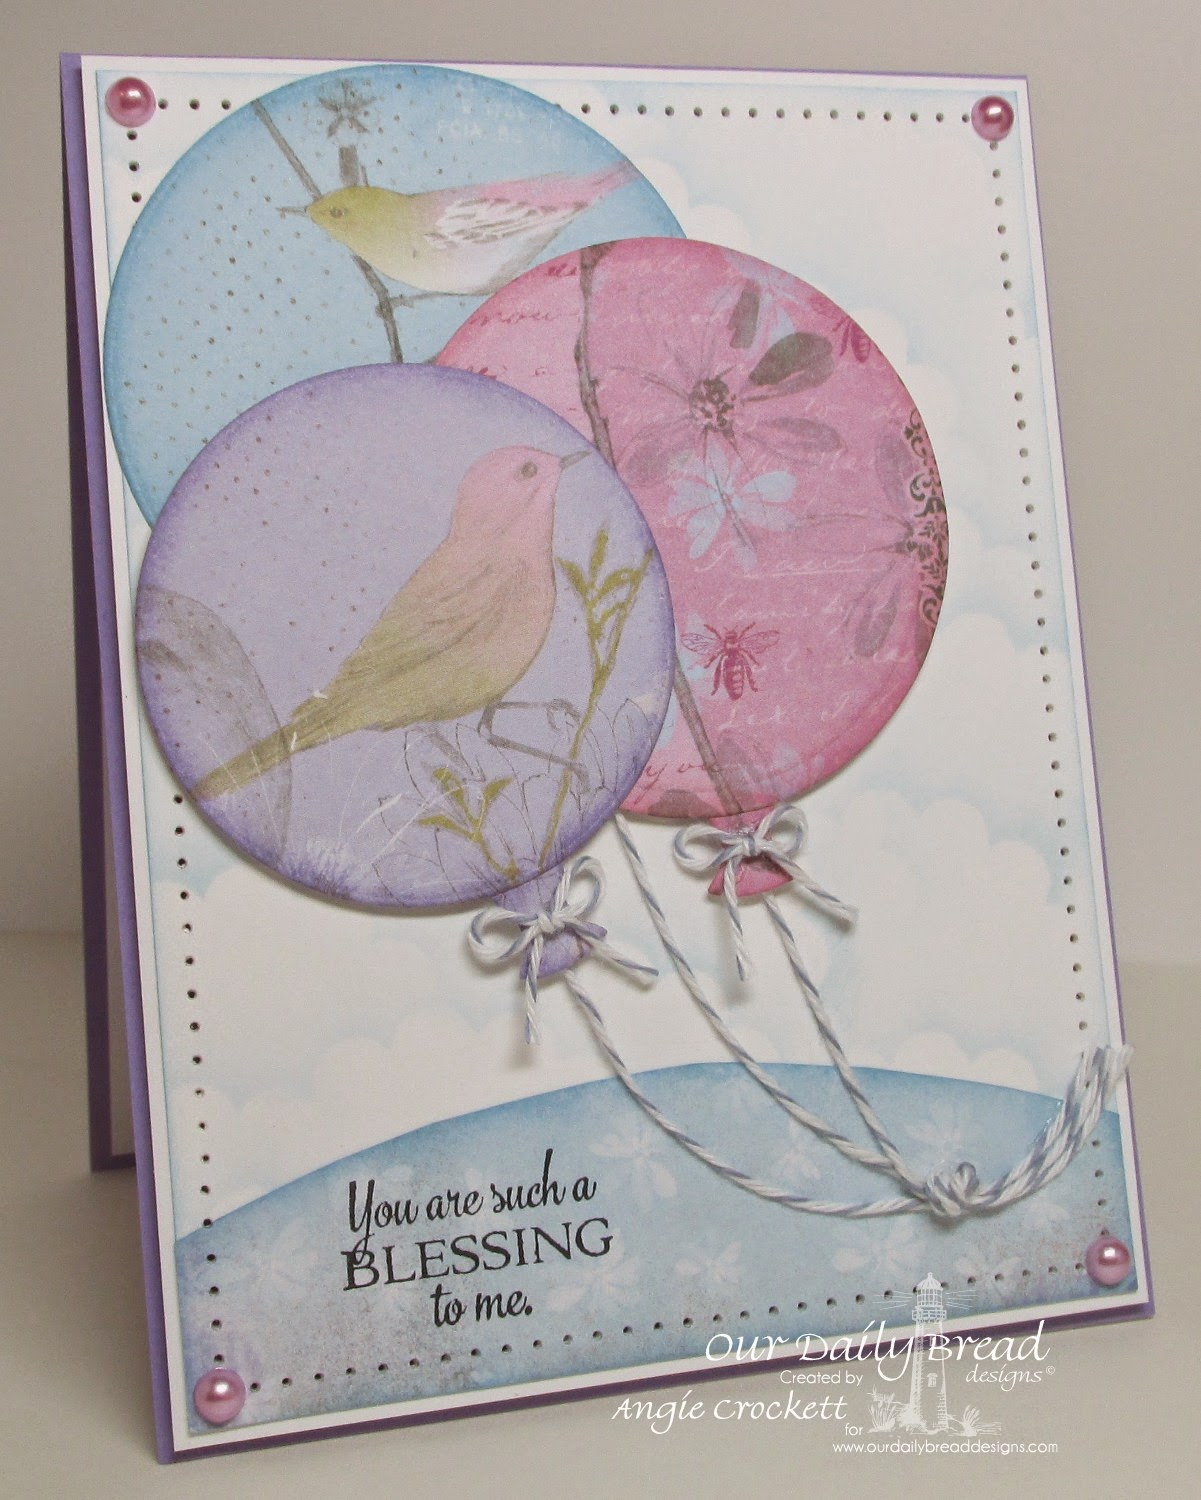 ODBD Doily Blessings, ODBD Custom Circle Ornaments Dies, ODBD Custom Matting Circles Dies, Card Designer Angie Crockett